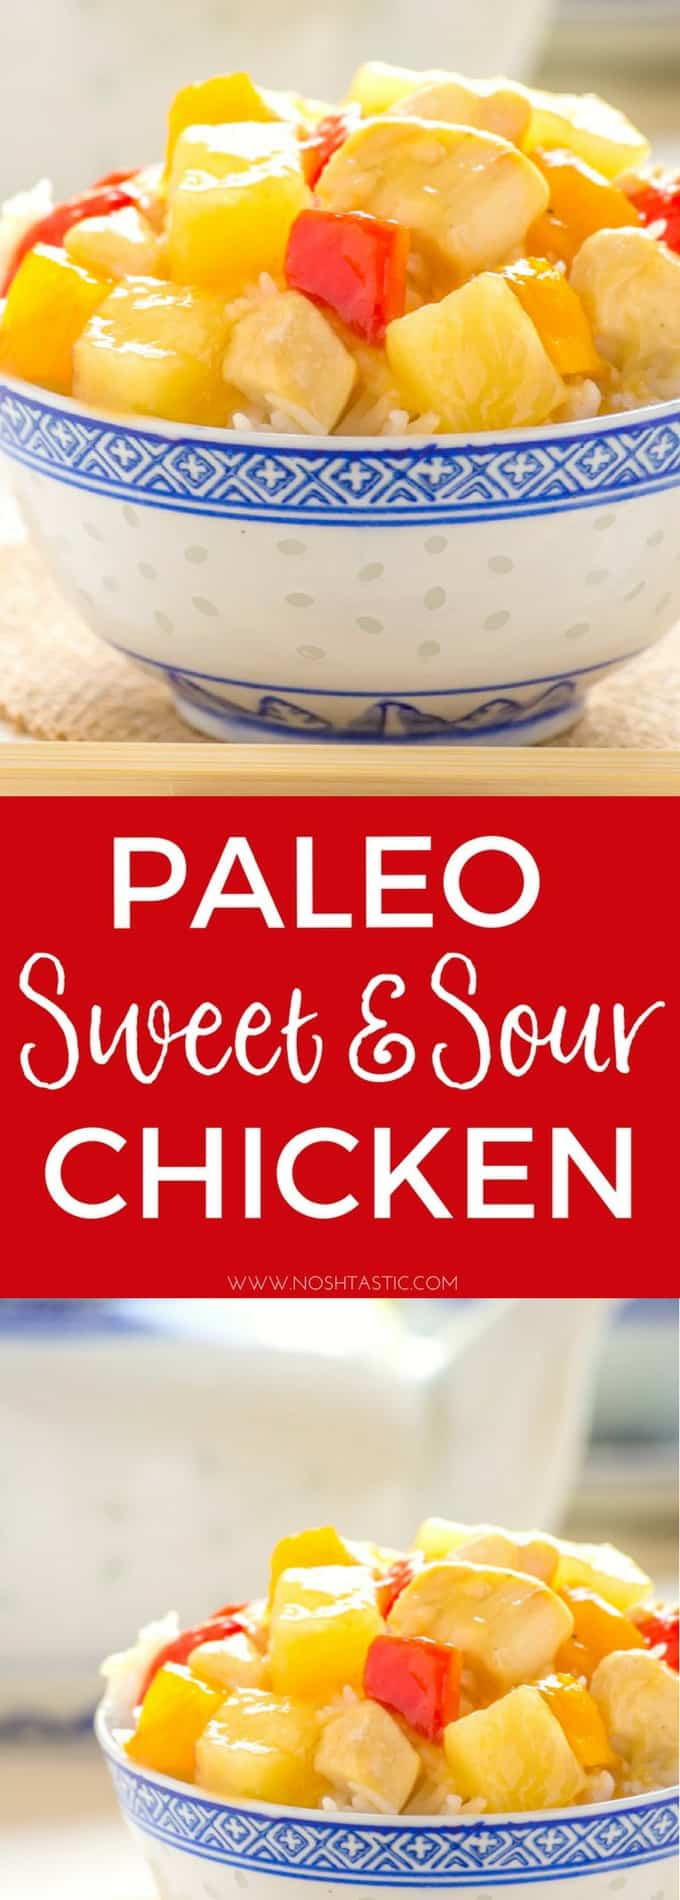 Paleo Sweet and Sour Chicken Recipe that is made in about 15 Minutes! So EASY! #paleo #glutenfree #paleochinese #paleochicken #paleodinner